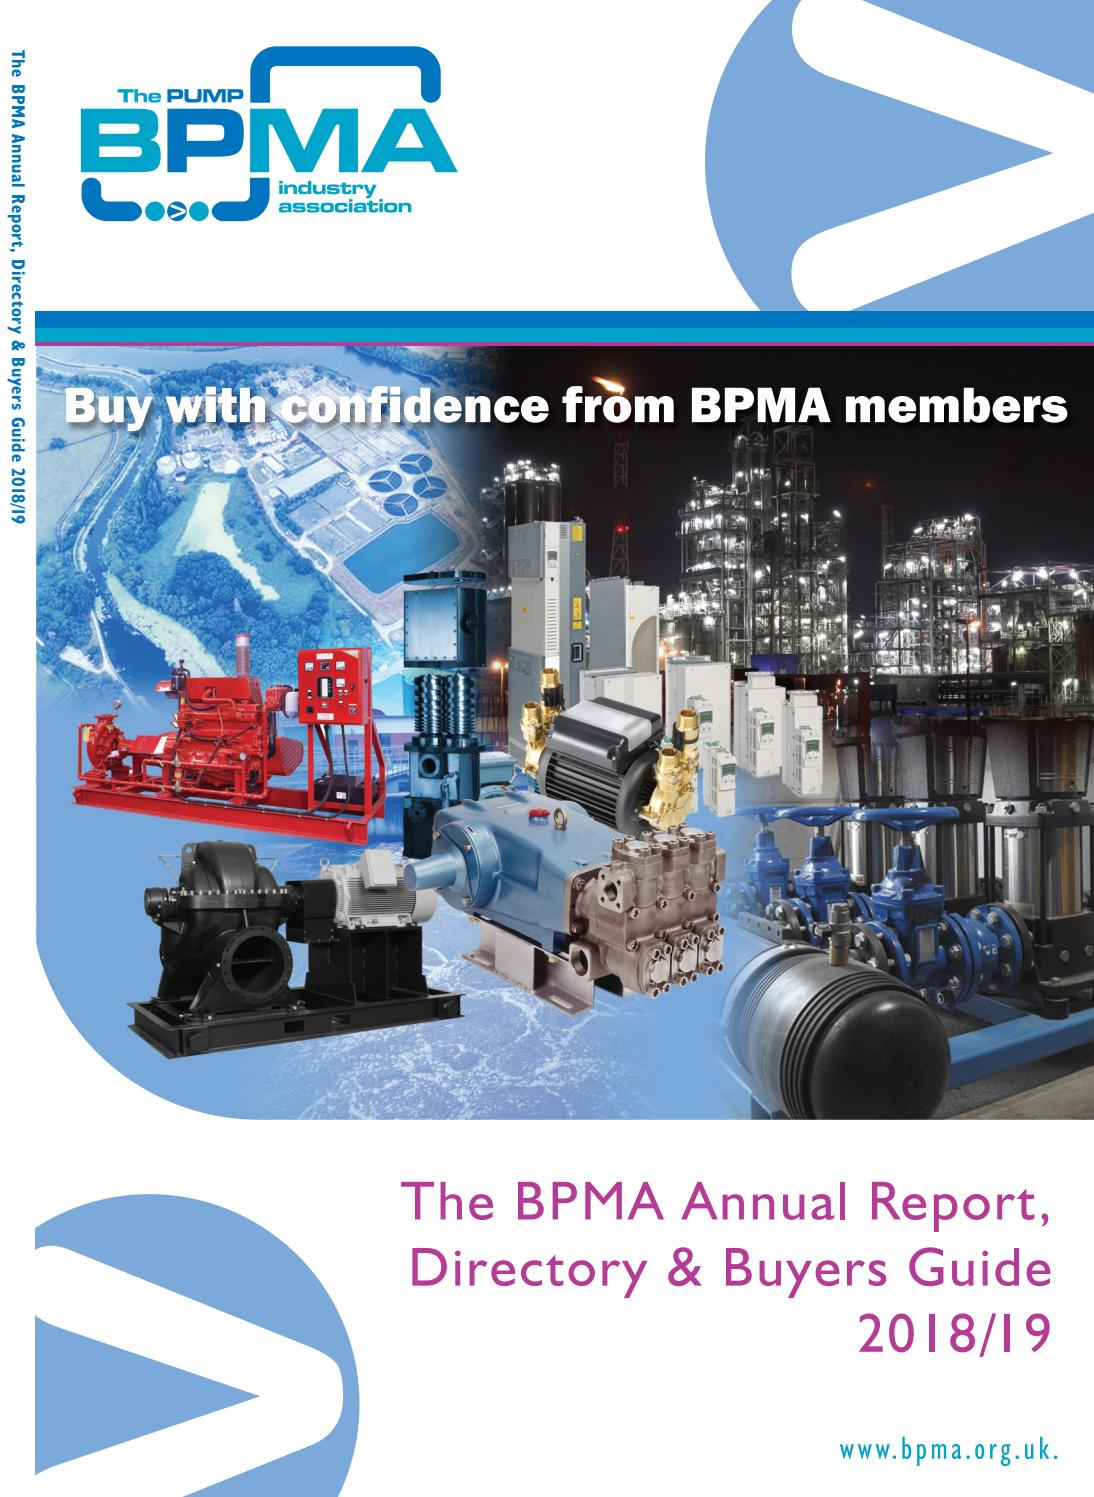 BPMA Annual Report, Directory & Buyers Guide 2018/19 by